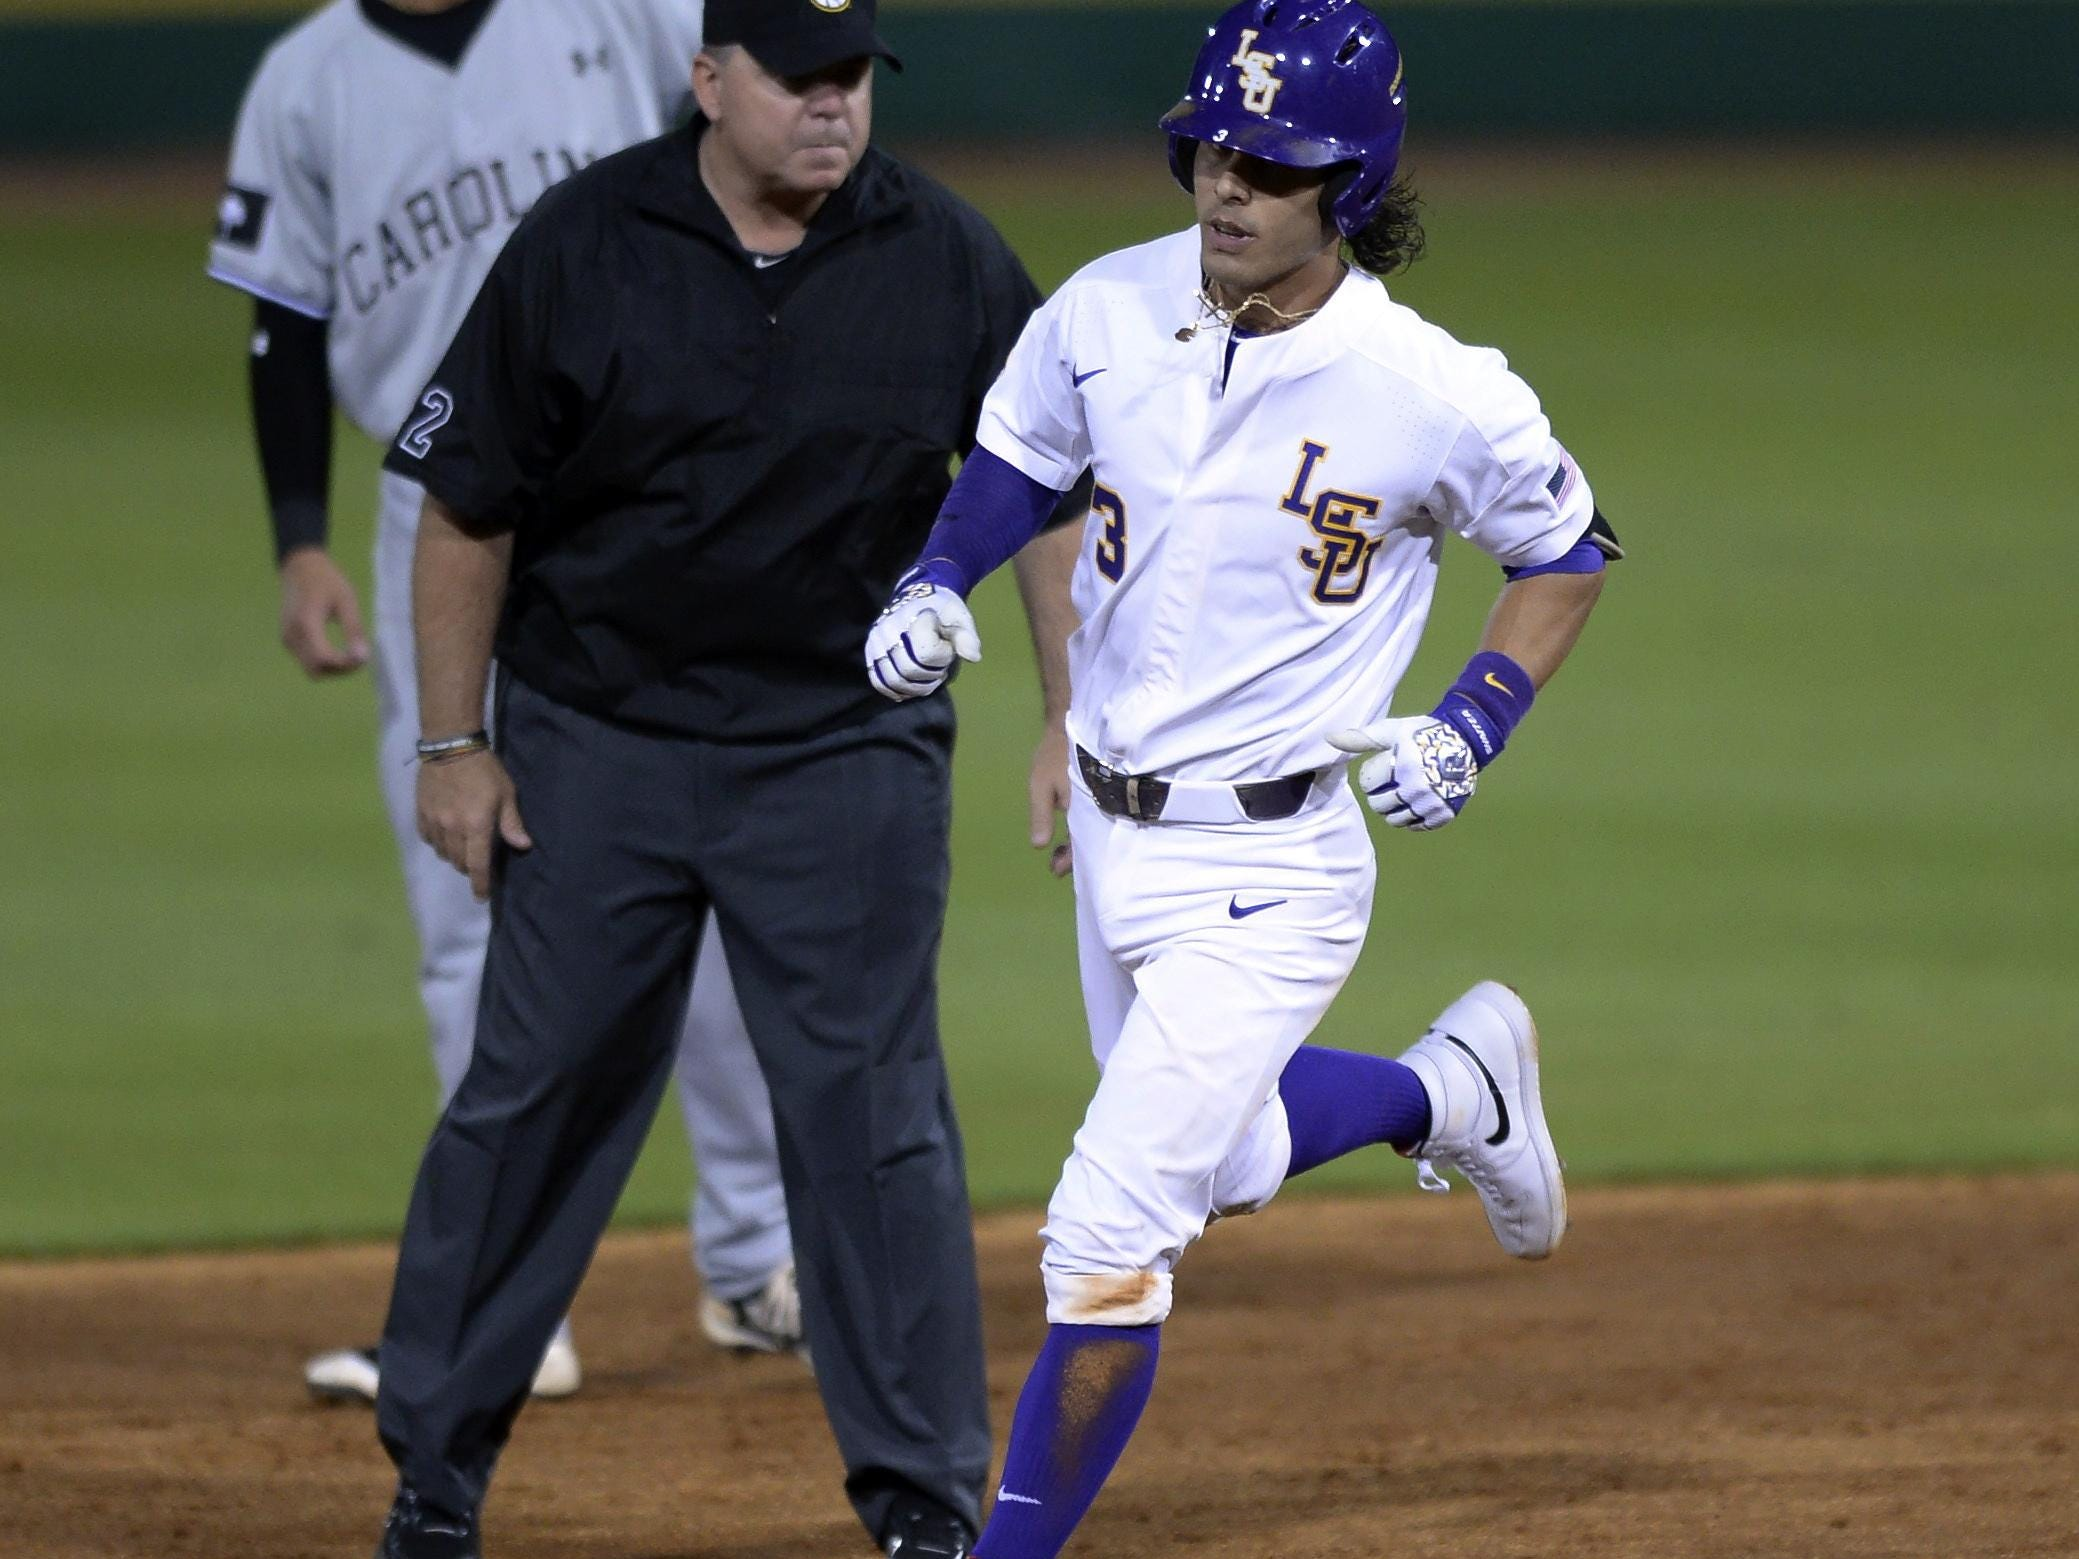 LSU's Kramer Robertson (3) has been named the SEC Player of the Week.